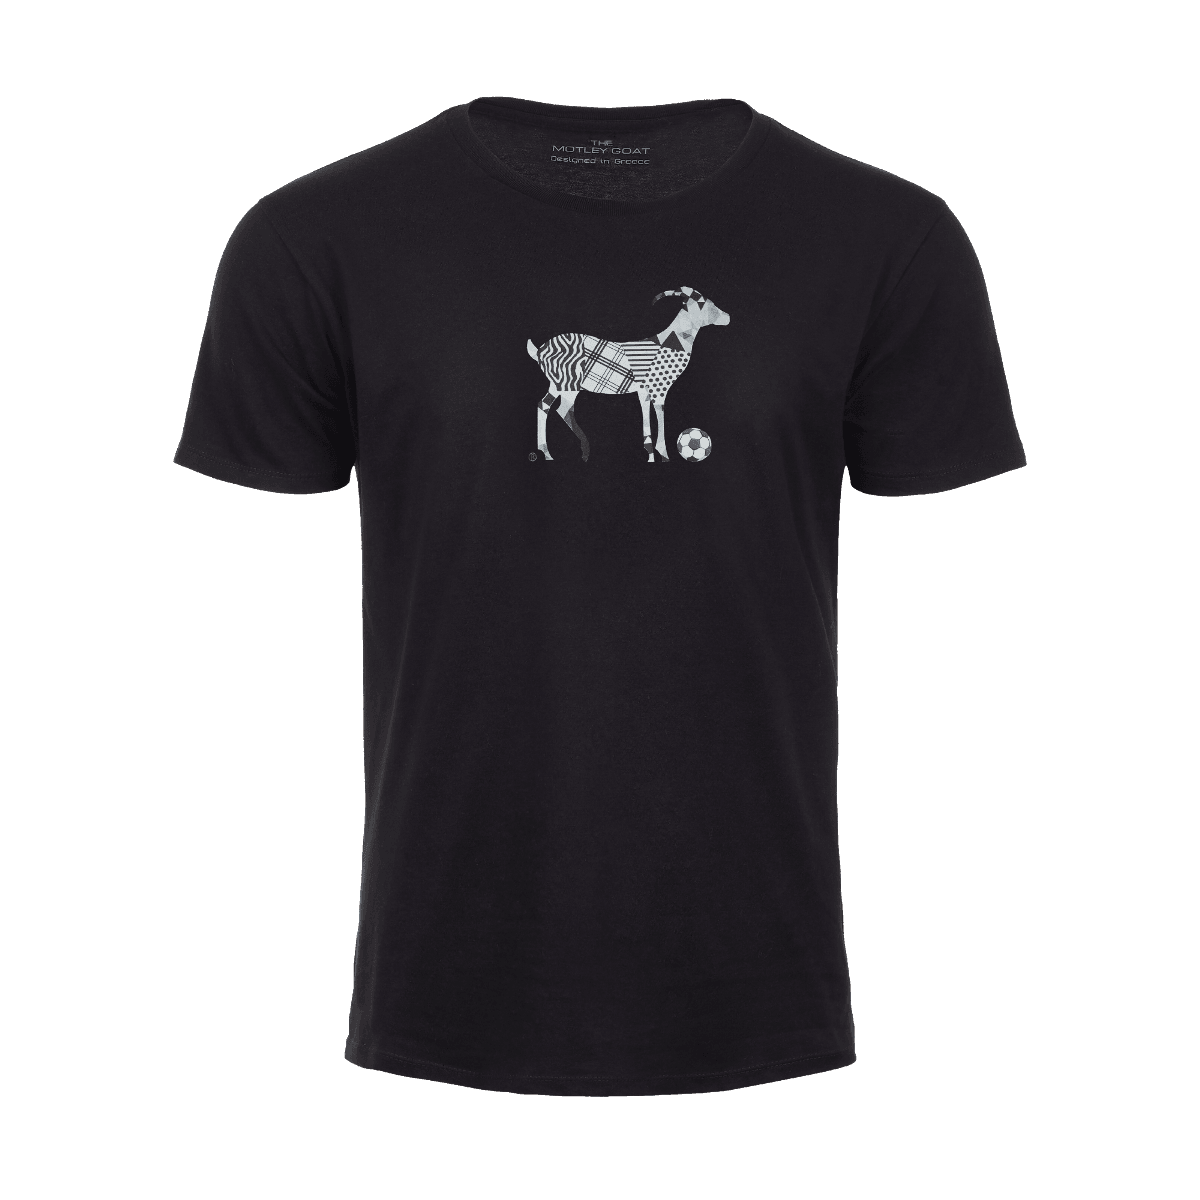 Unisex Slim-Fit T-Shirt